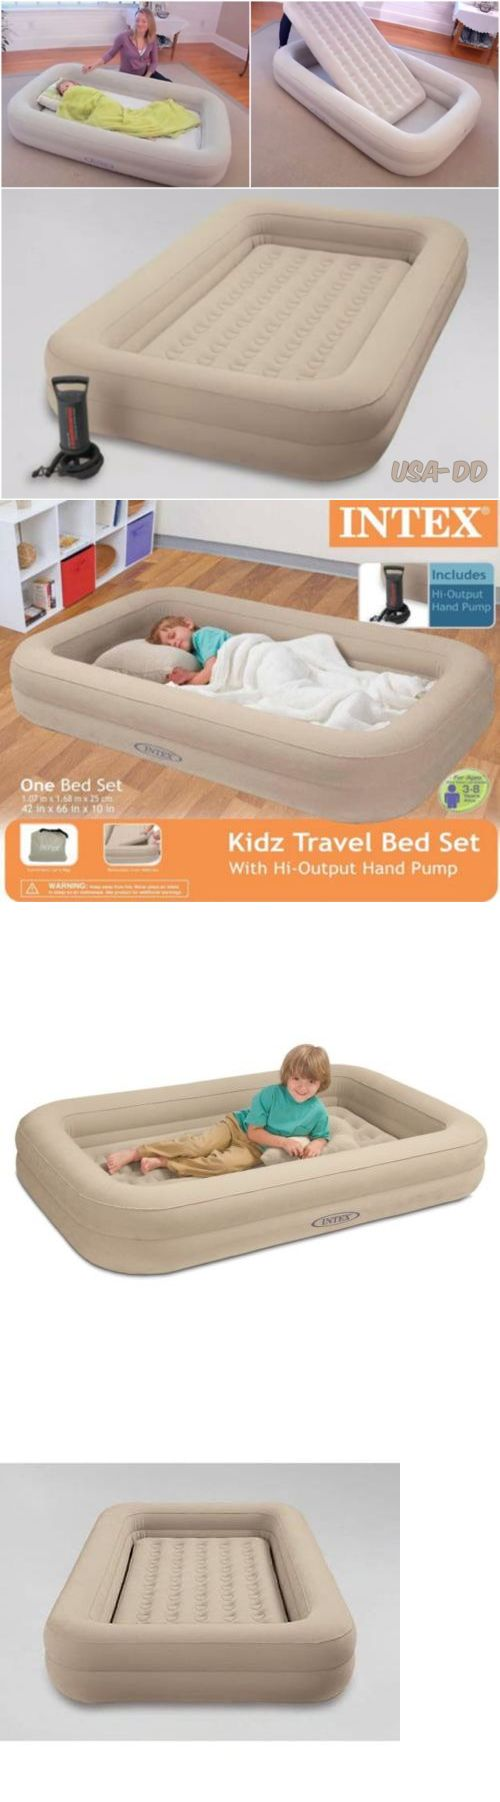 Baby bed camping - Mattresses And Pads 36114 Intex Portable Toddler Travel Bed Set Kids Child Inflatable Air Bed